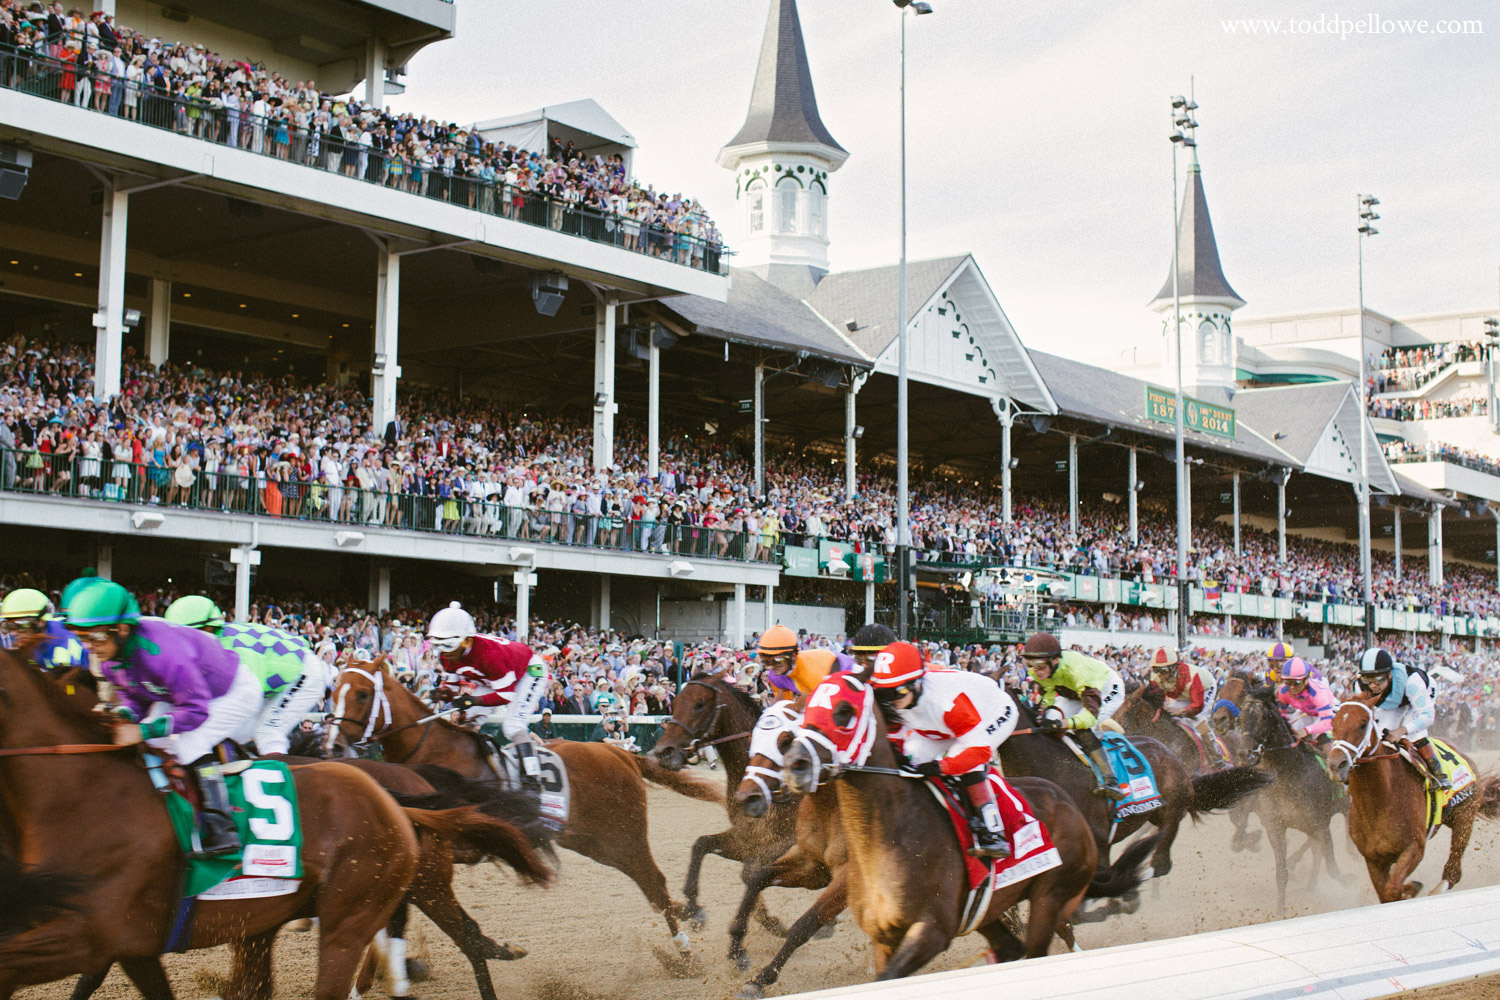 67-kentucky-derby-140-2014-371.jpg